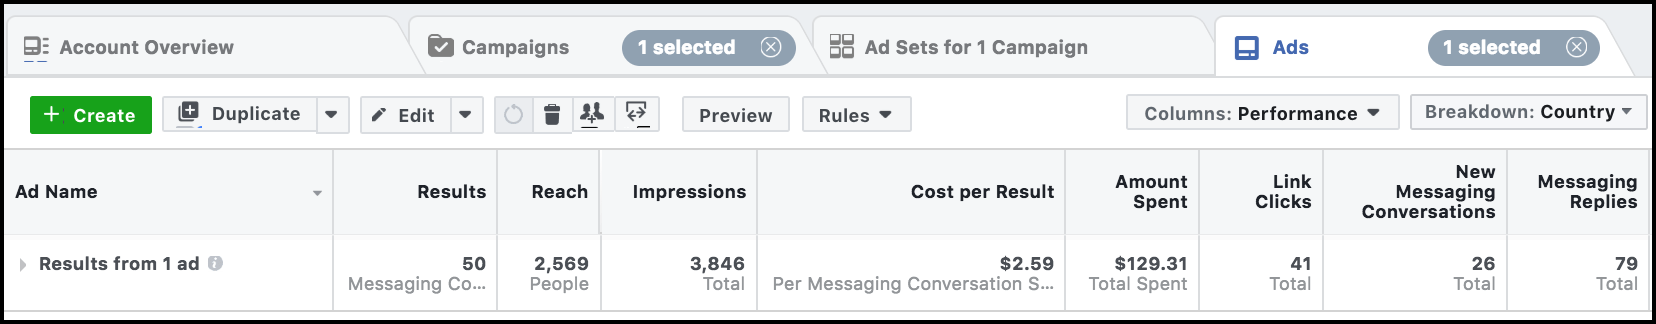 facebook-messenger-ad-results